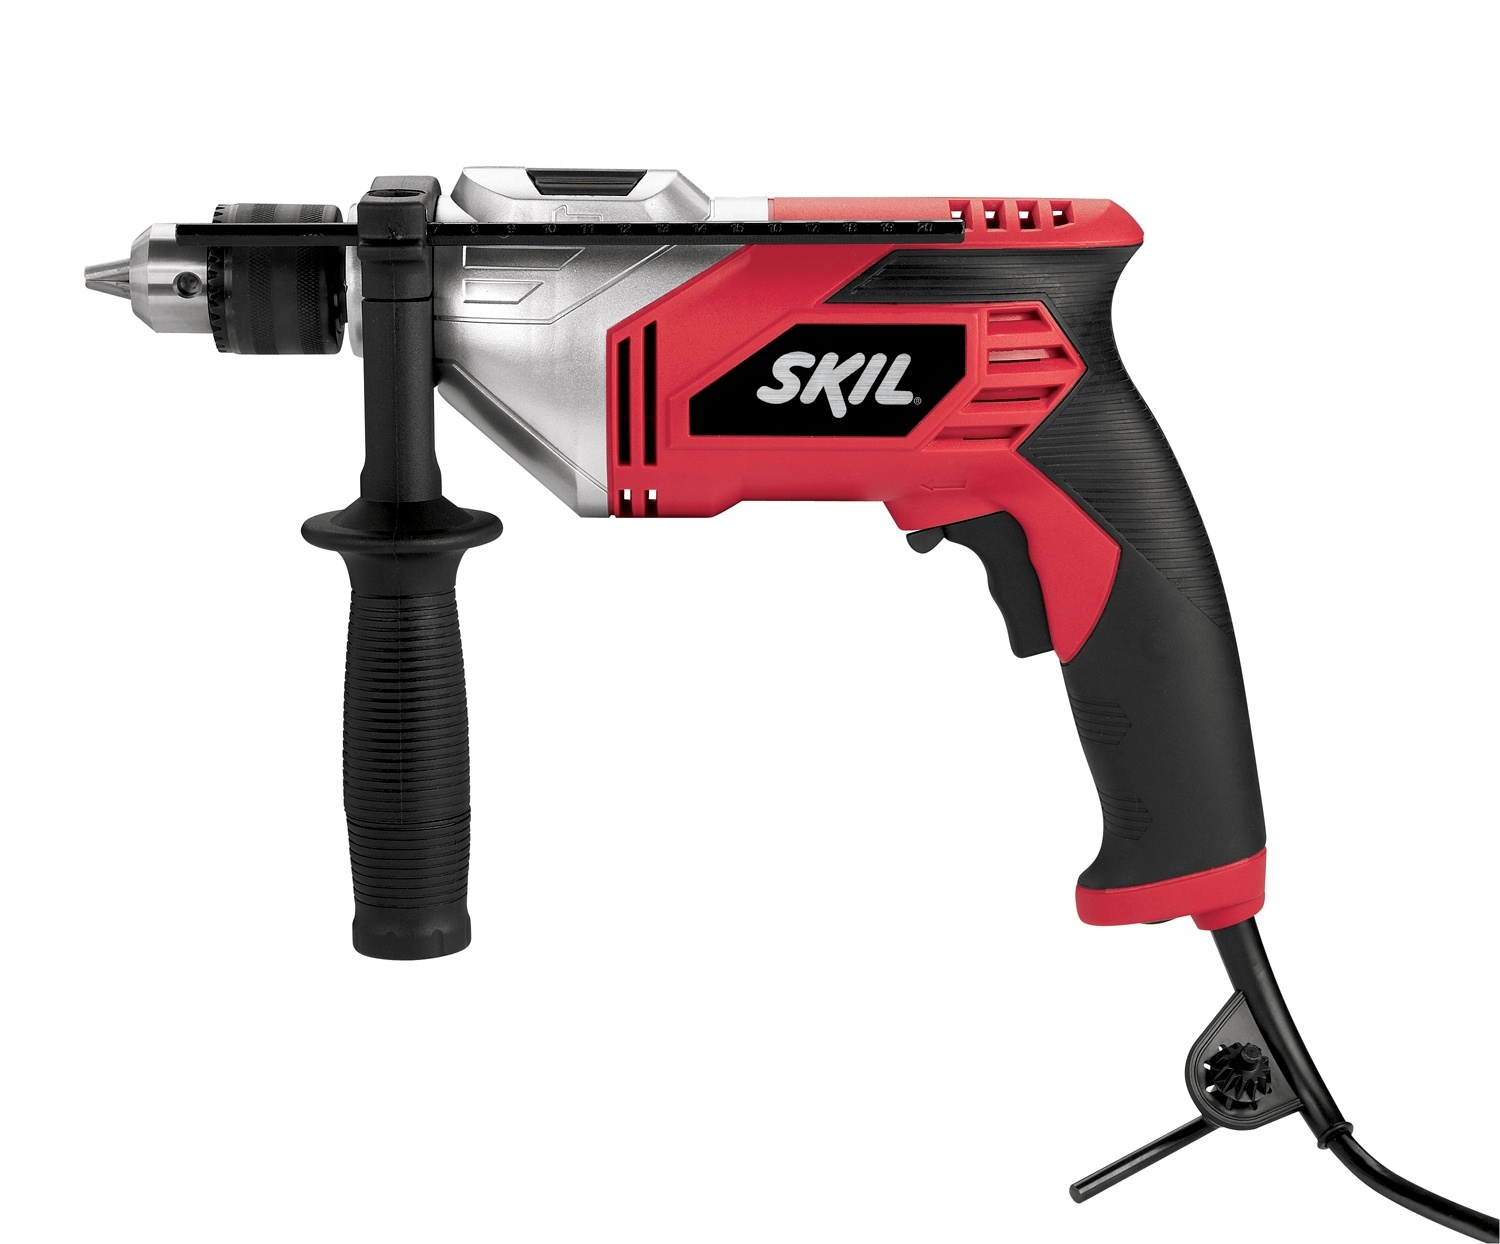 "SKIL 6445-04 1 2"" 7A Corded Hammer Drill by Skil"